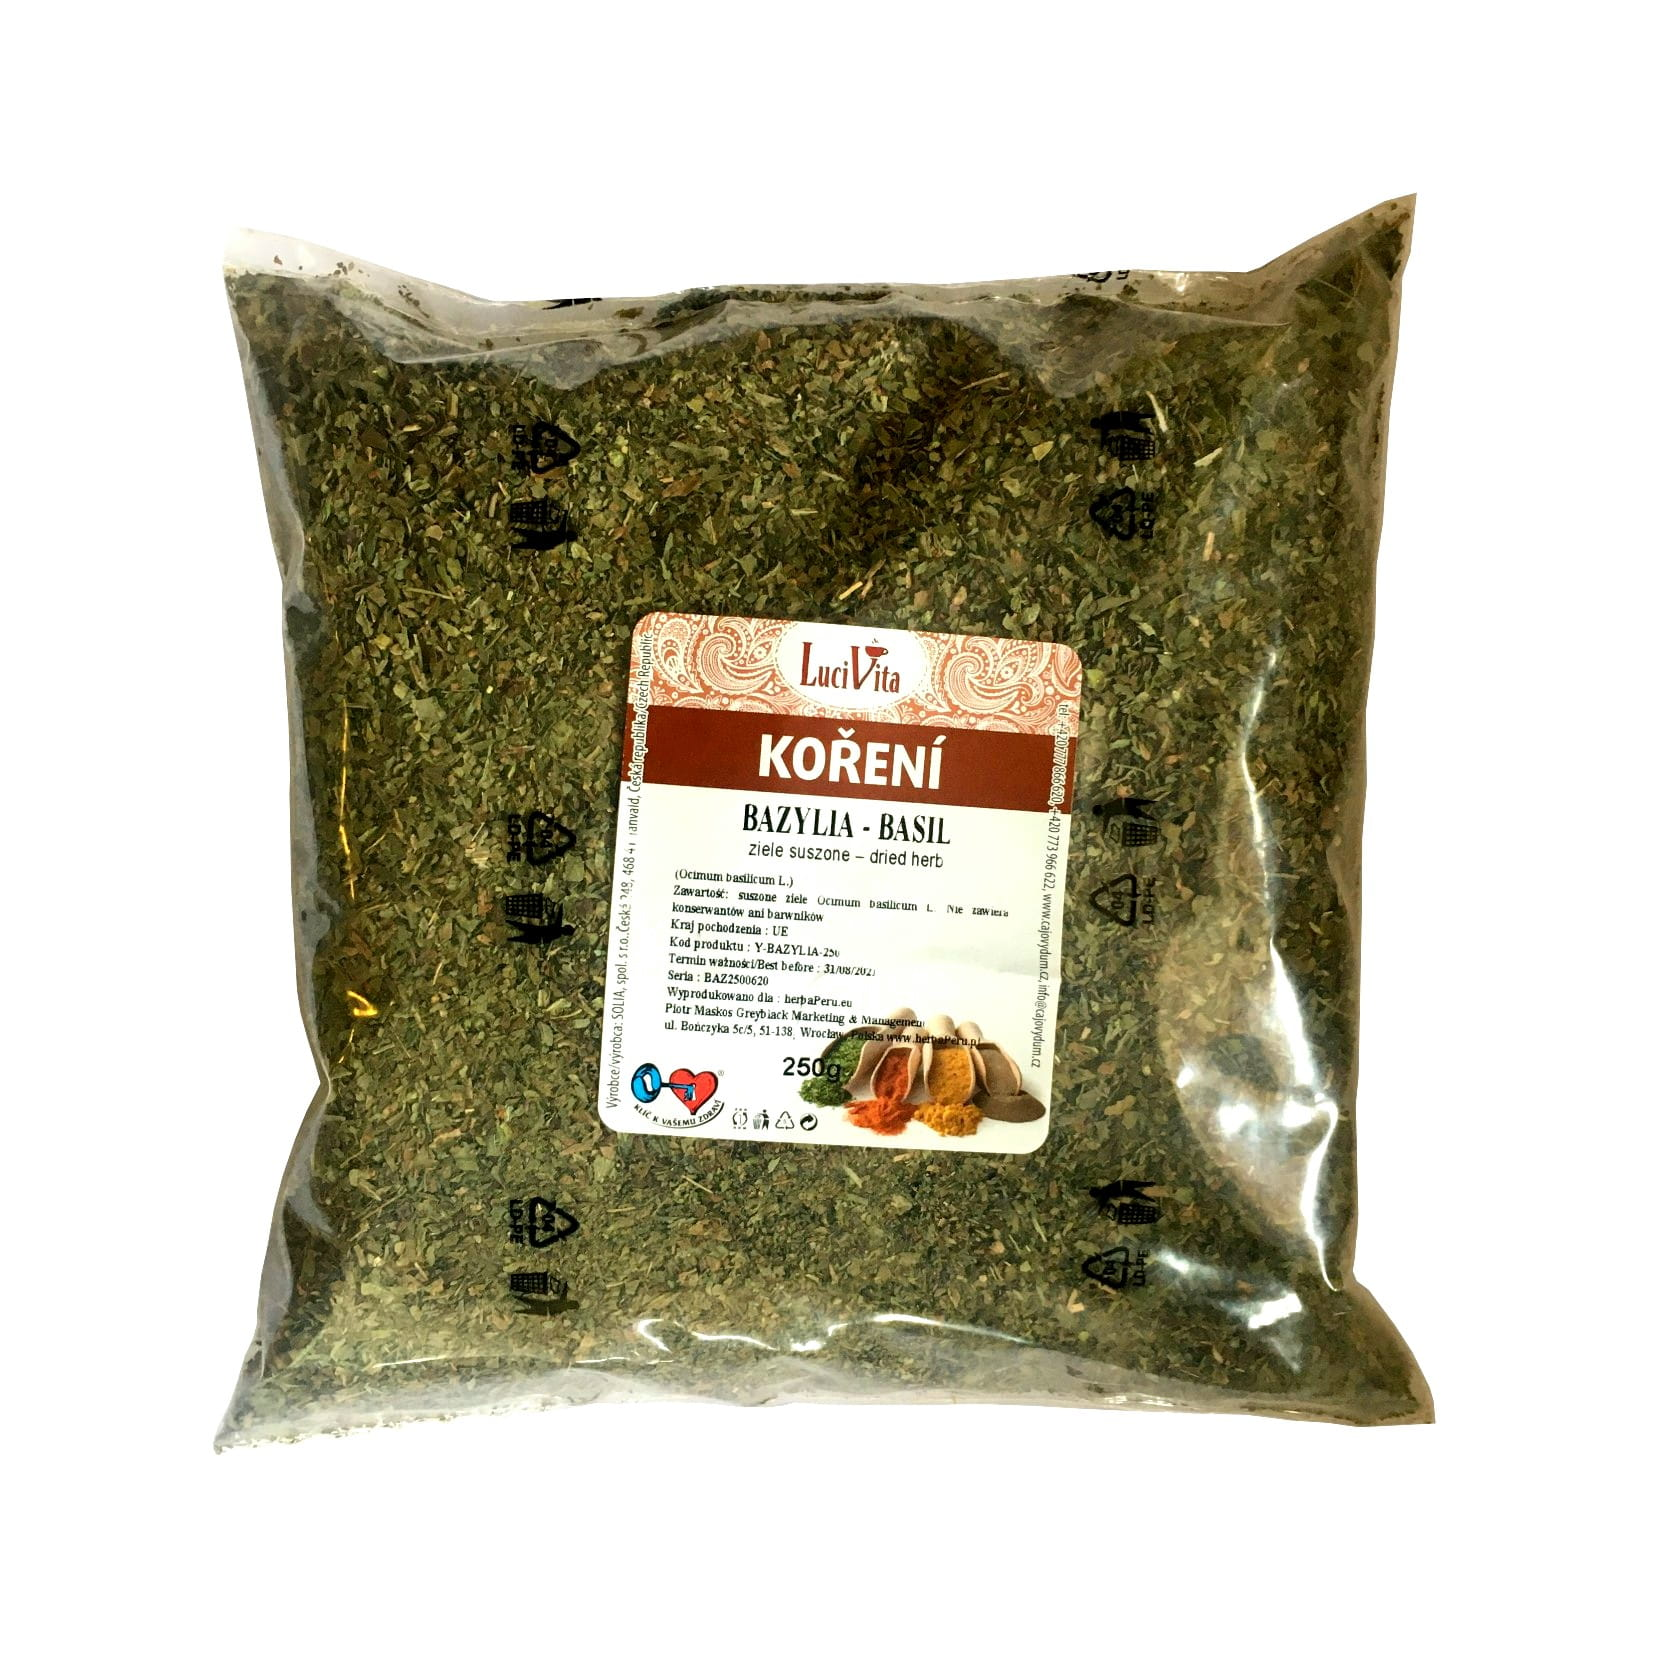 BASIL - dried herb - 50g (1) (1)